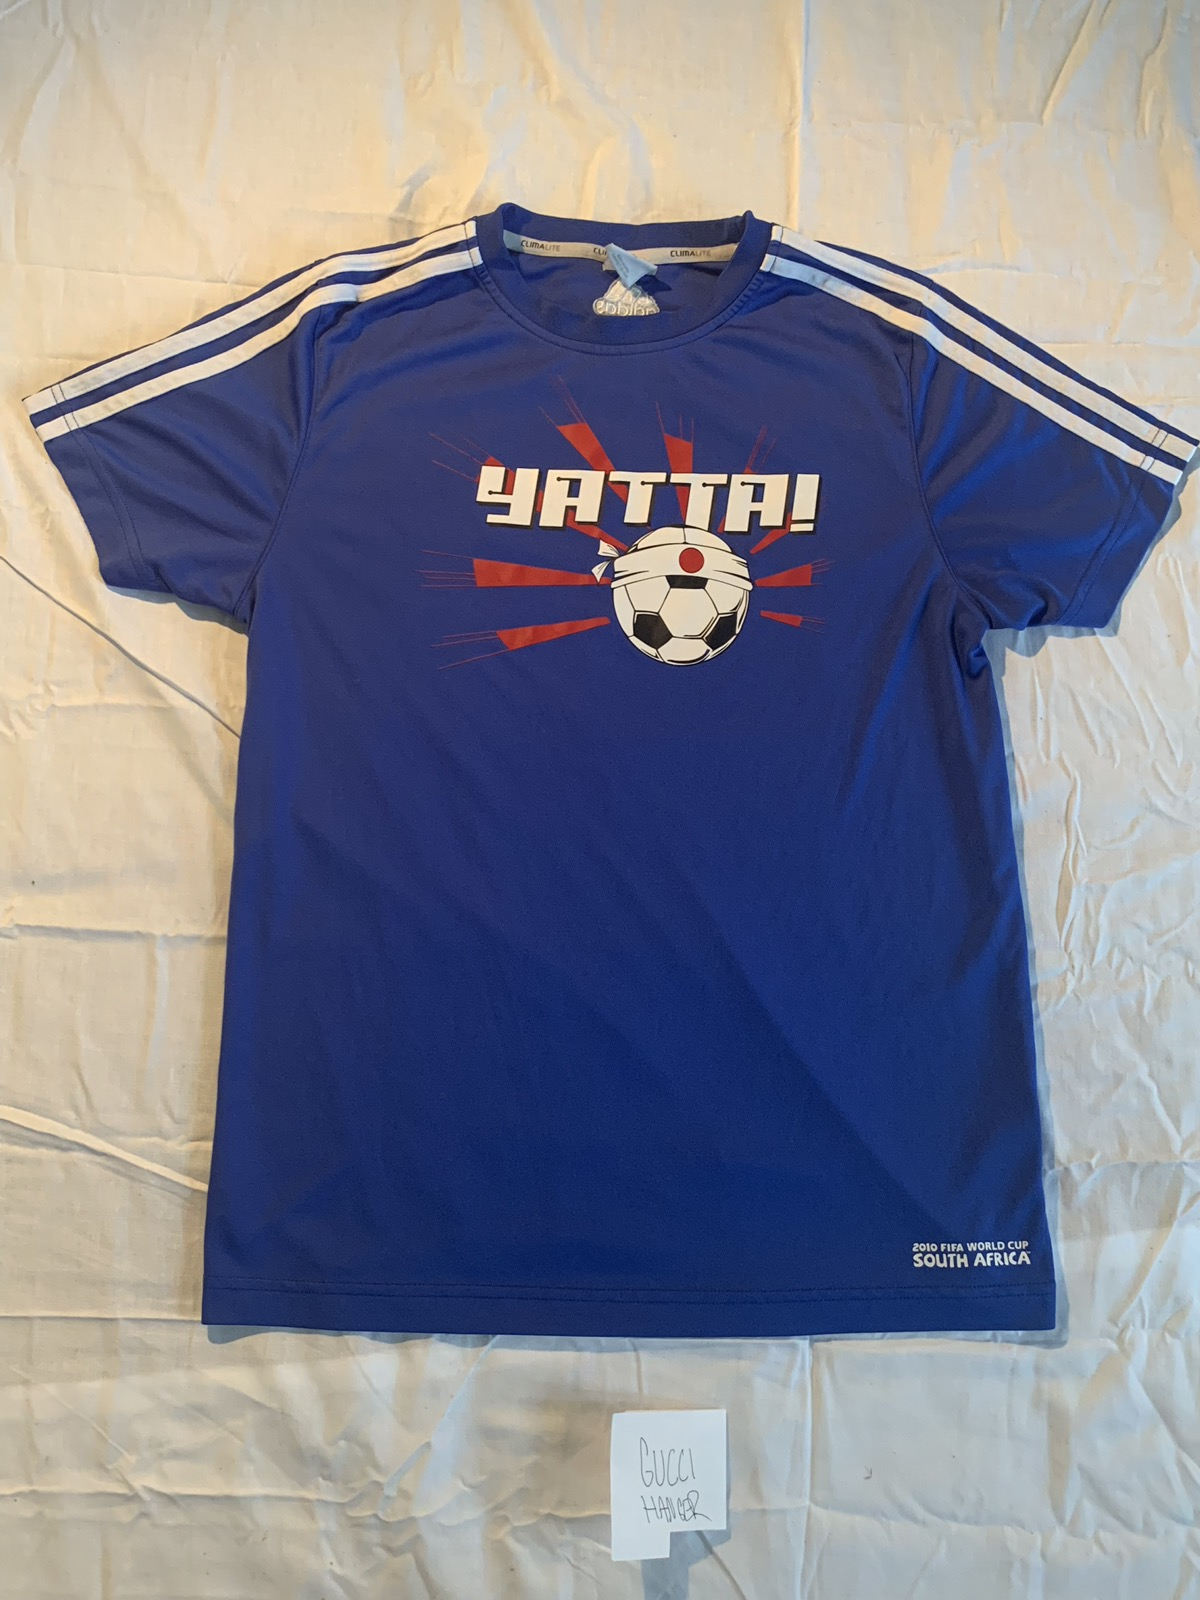 d71f9f41e Adidas VINTAGE 2010 FIFA WORLD CUP JAPAN SOCCER JERSEY SIZE M Size m -  Jerseys for Sale - Grailed